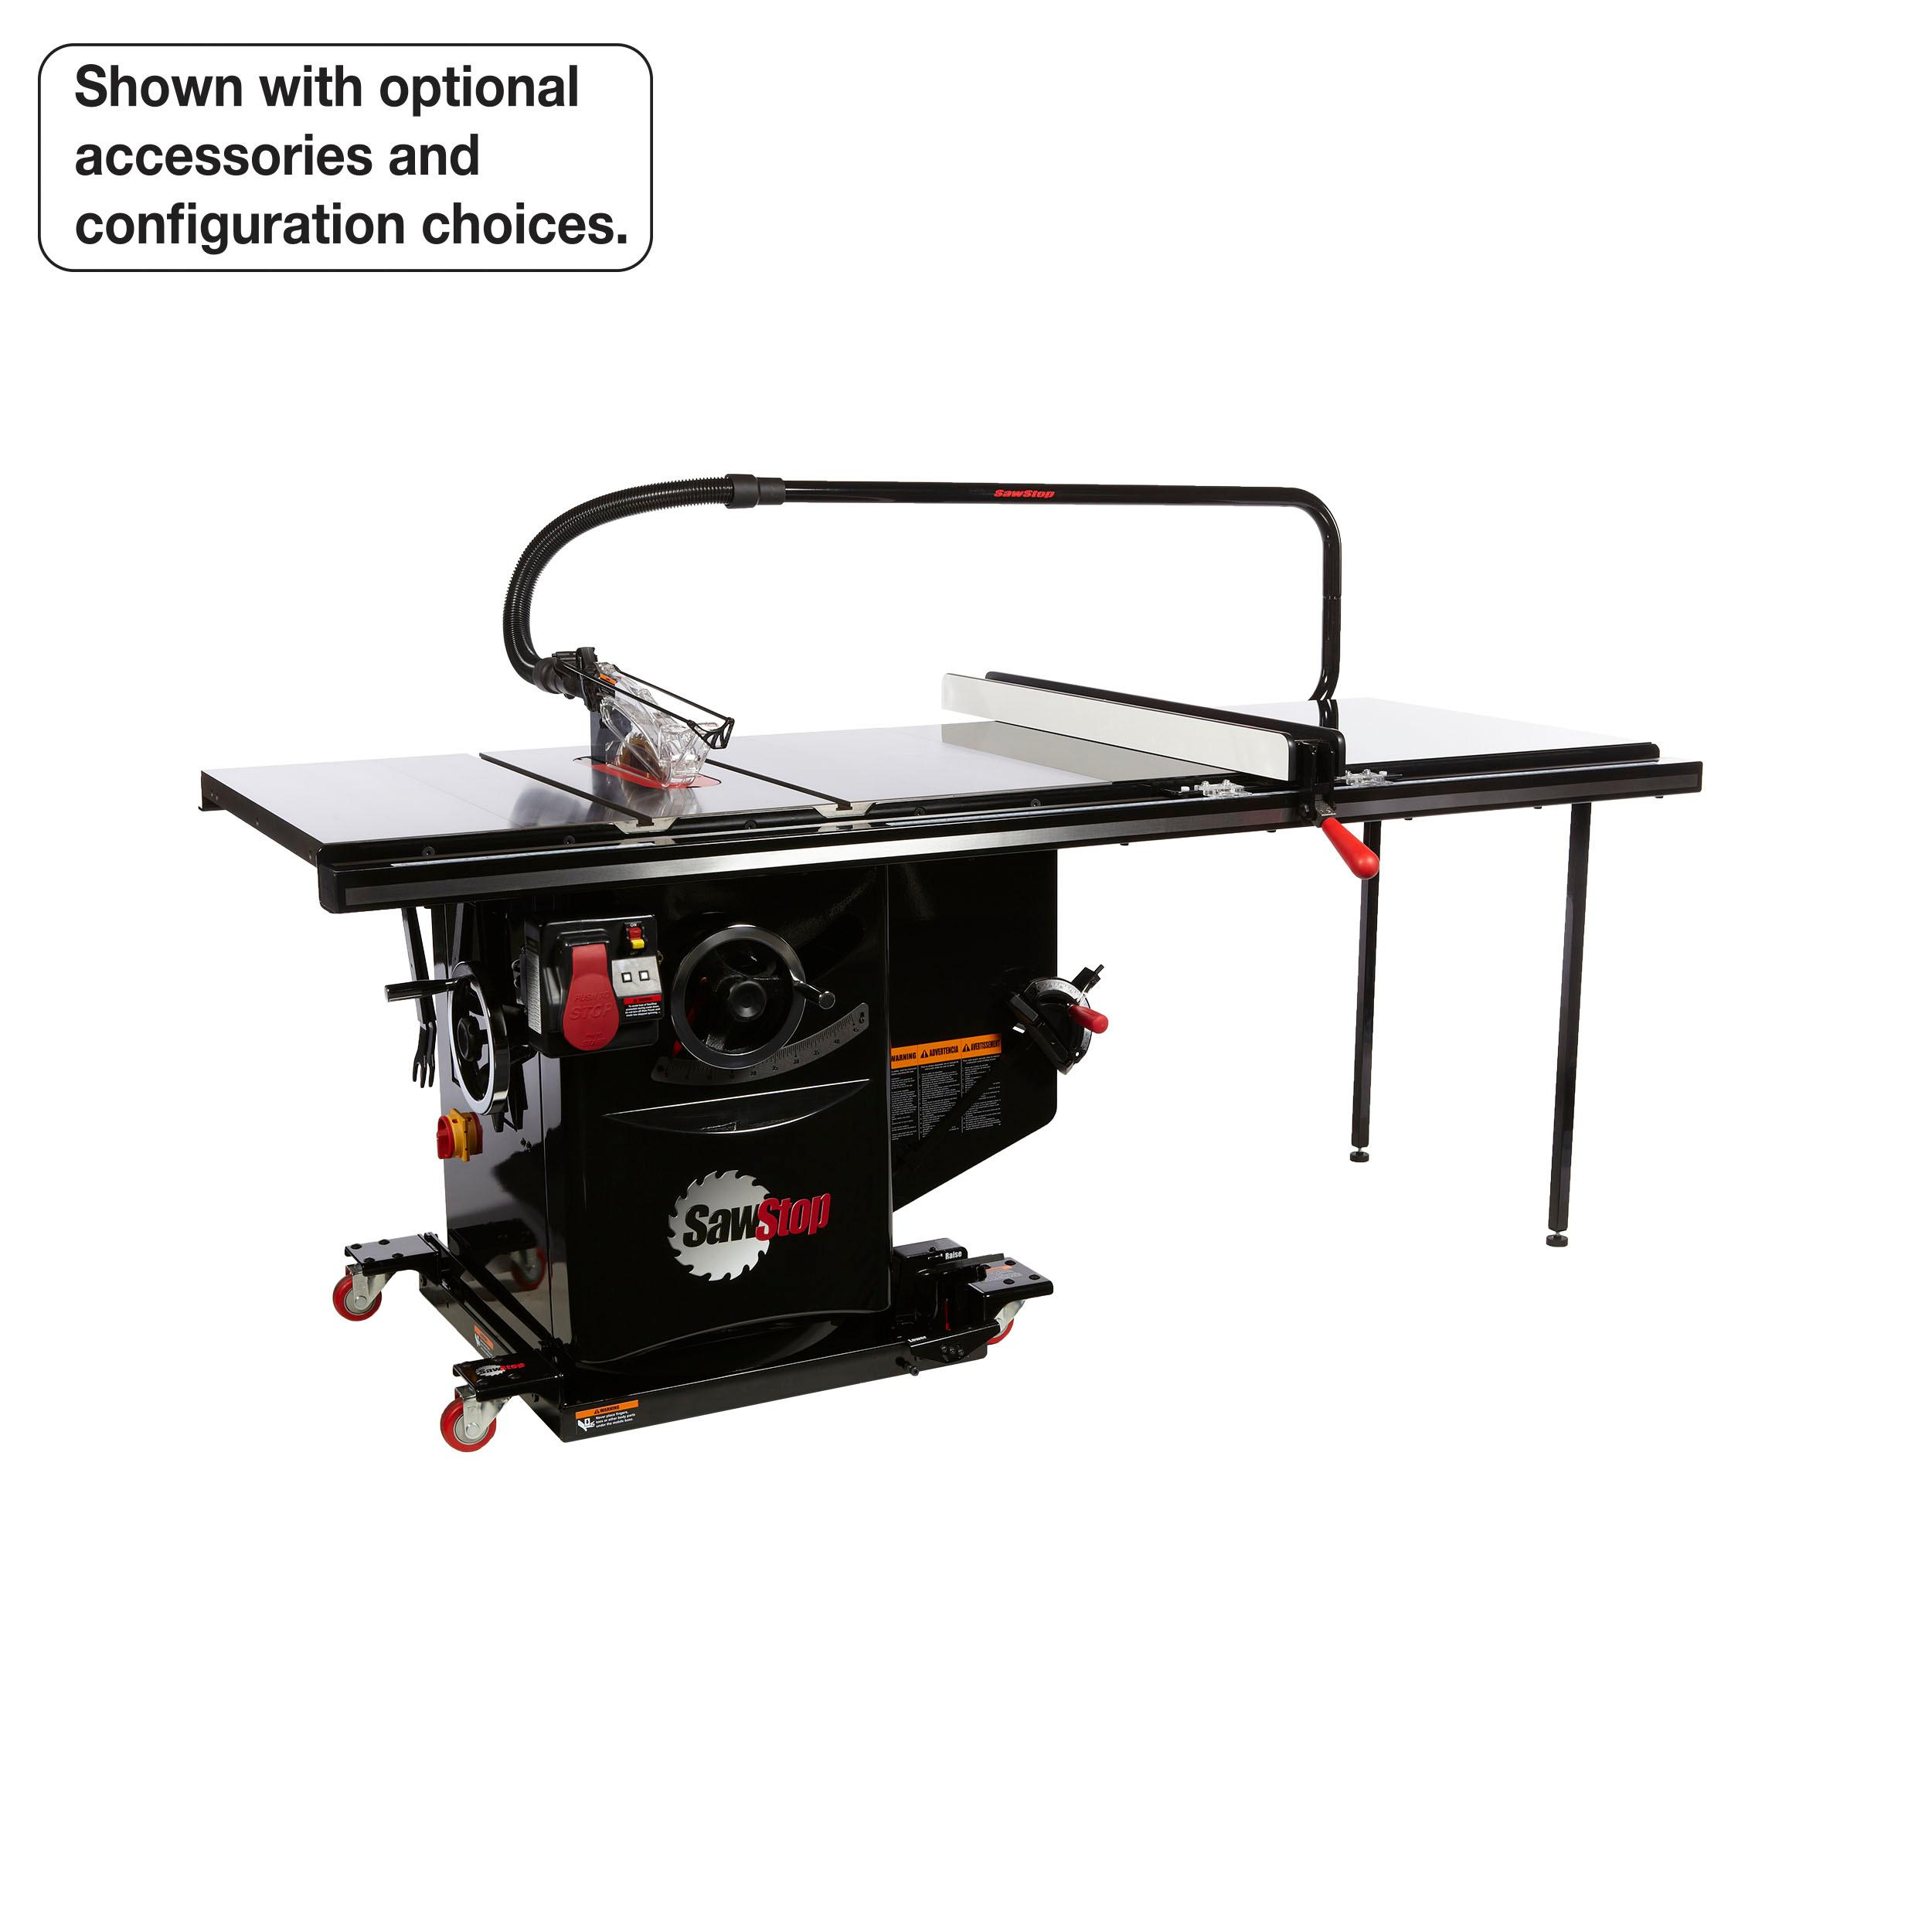 SawStop ICS51230-52 5 HP 230V 60 Hz Cabinet Saw with 52-Inch ...